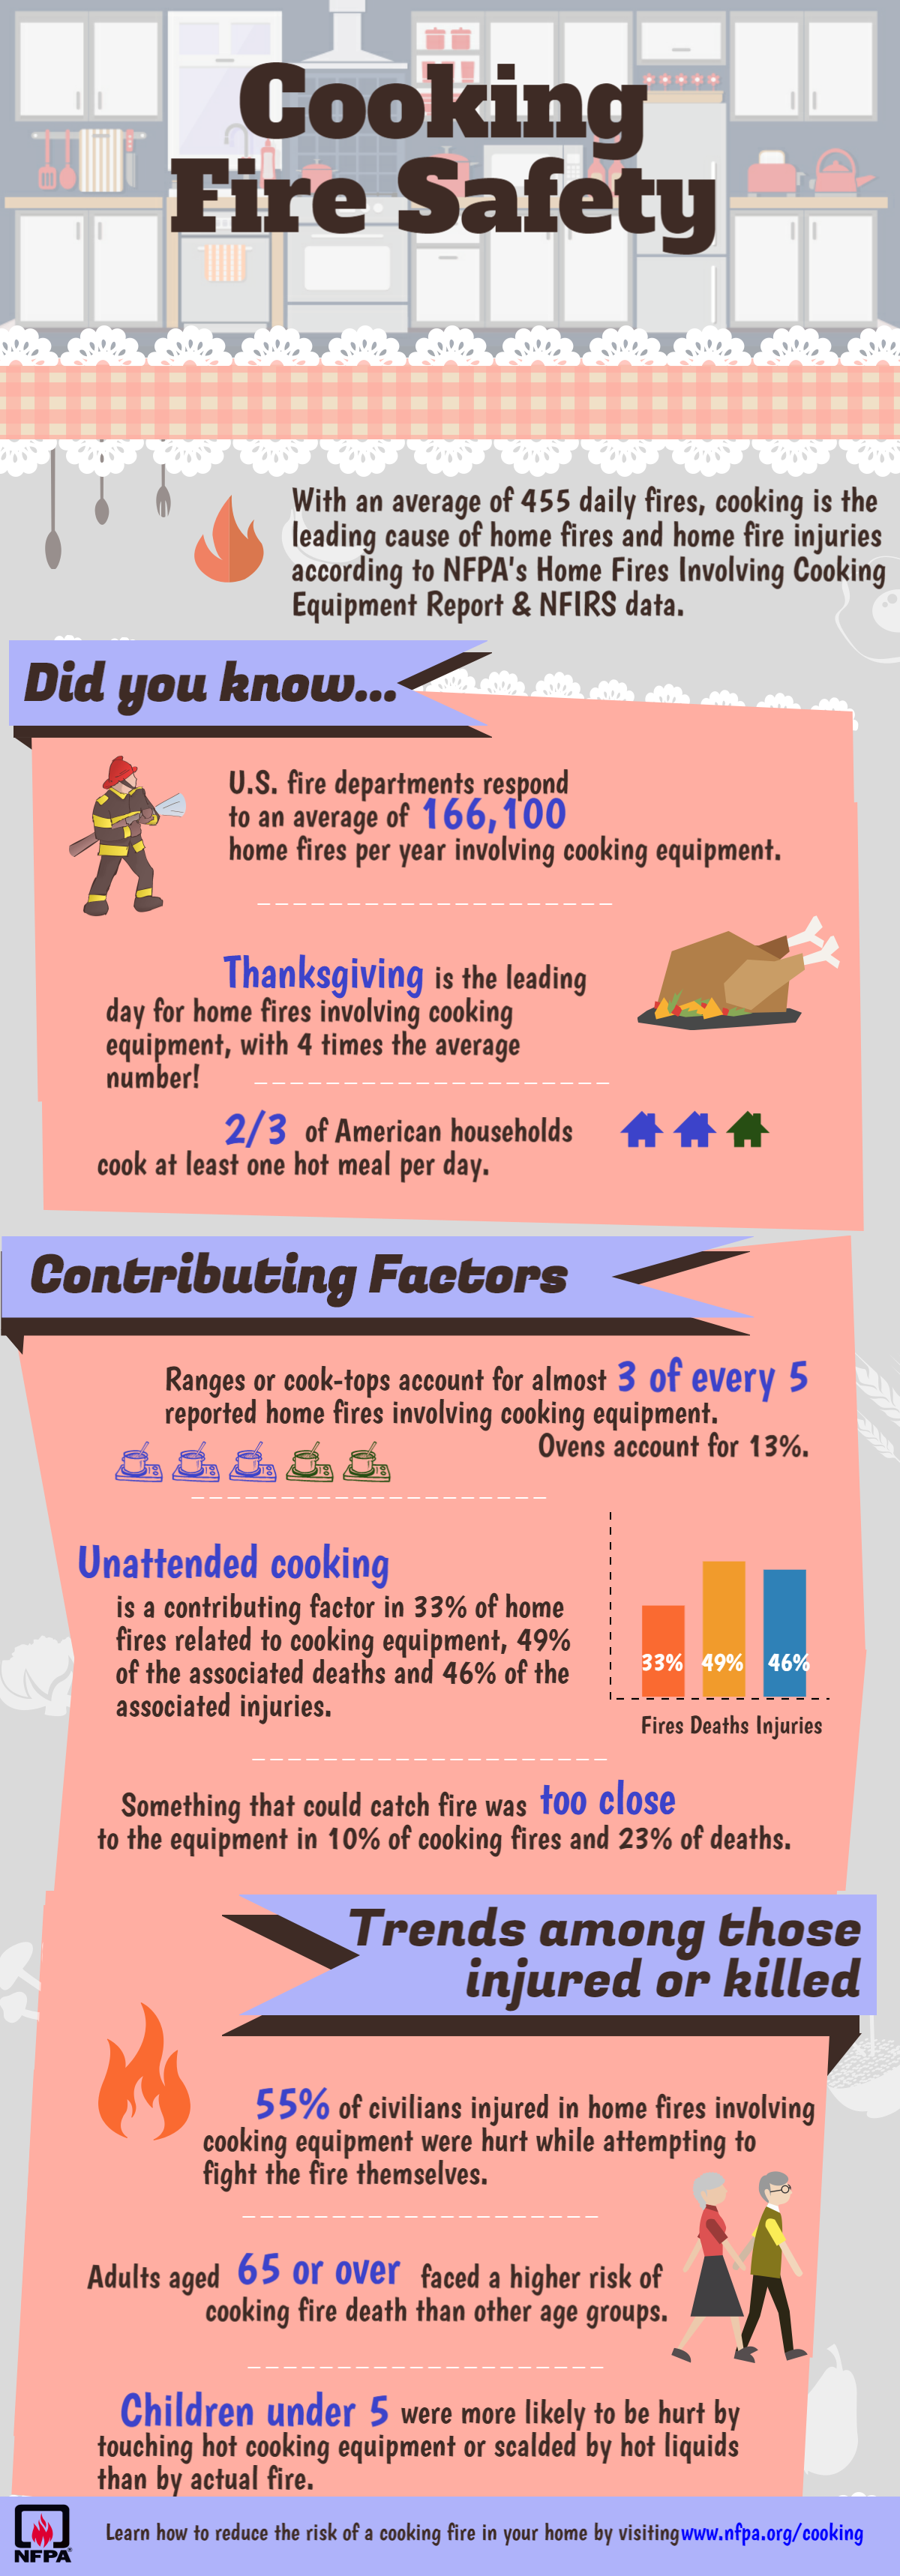 NFPA Cooking Safety Infographic